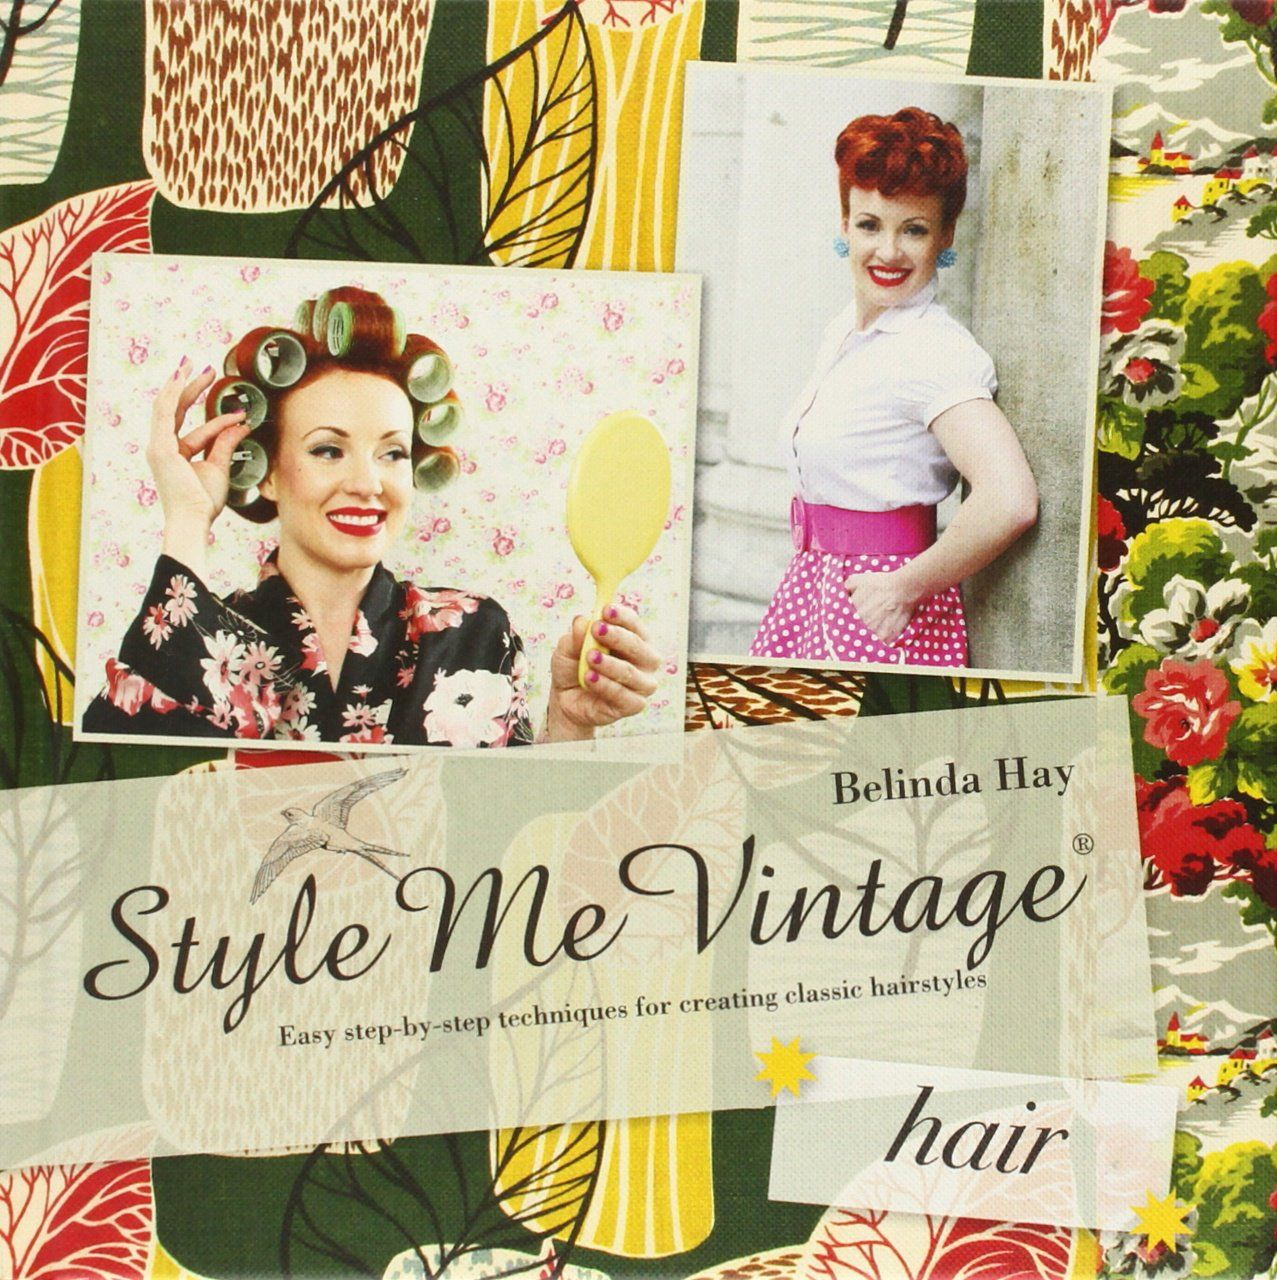 Style Me Vintage: Hair: Easy Step-by-Step Techniques for Creating Classic Hairstyles: Belinda Hay: 9781862059023: Amazon.com: Books